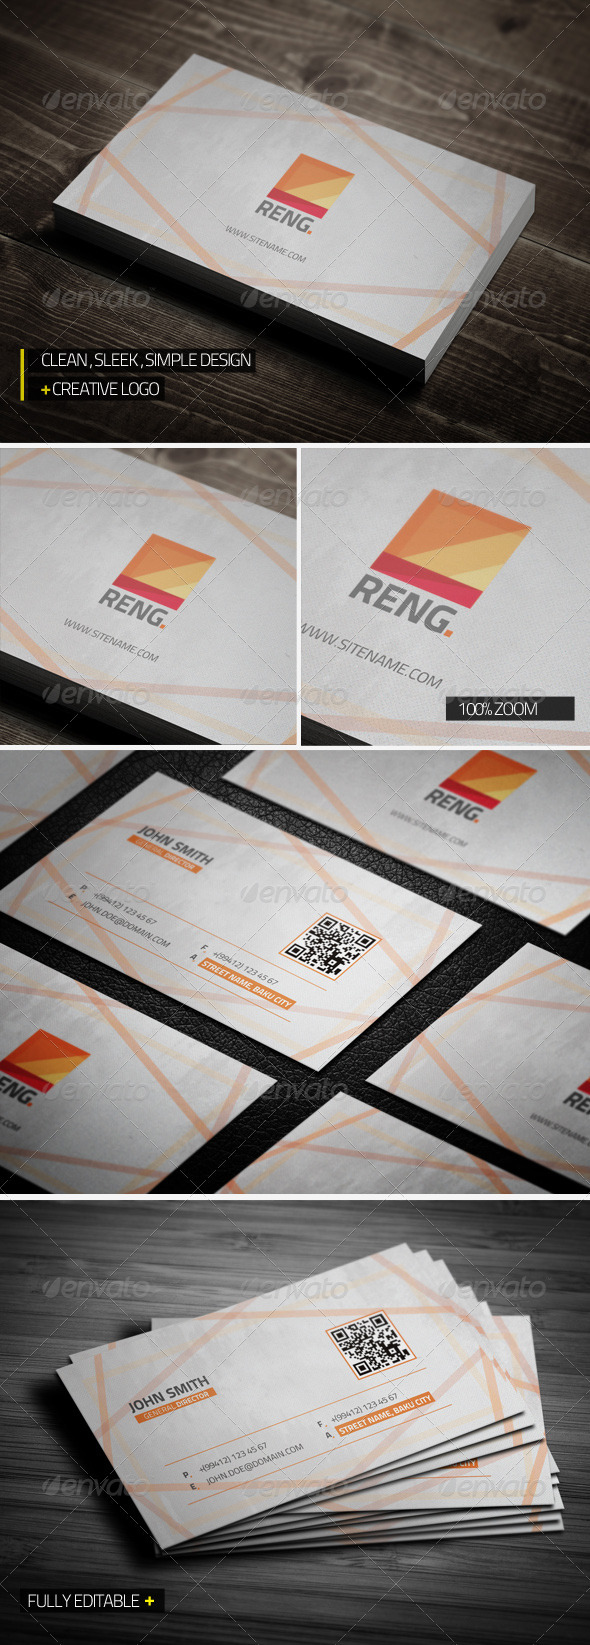 GraphicRiver Reng Creative Business Card 3736998